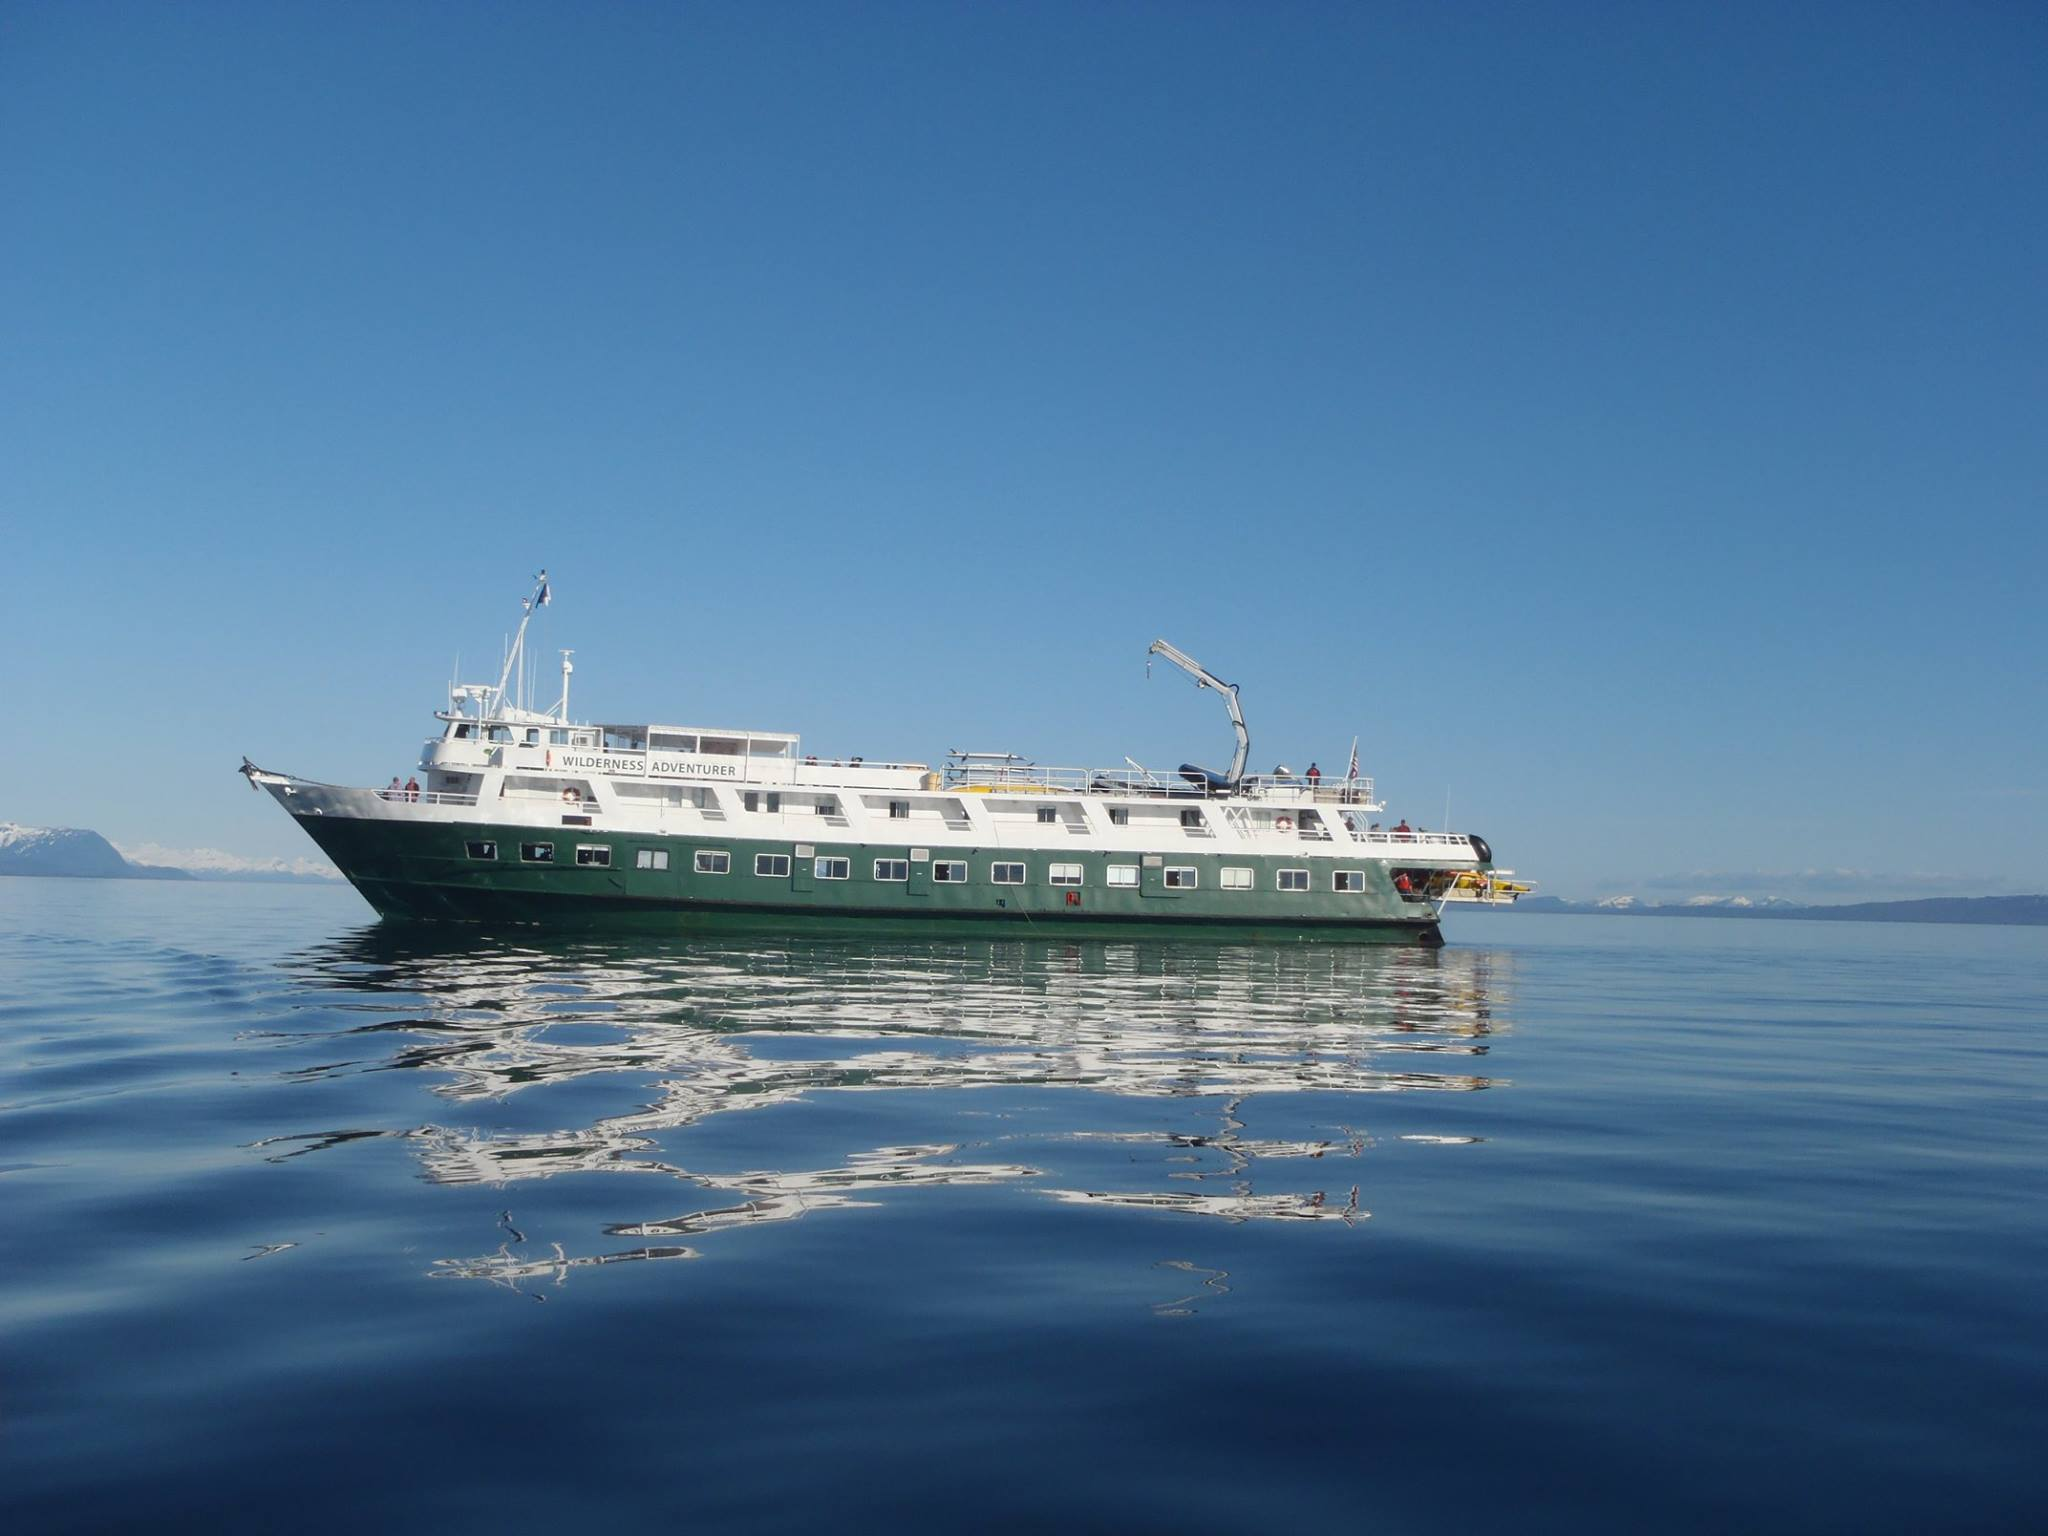 Wilderness Adventurer, the ship servicing Glacier Bay National Park Adventure Cruise